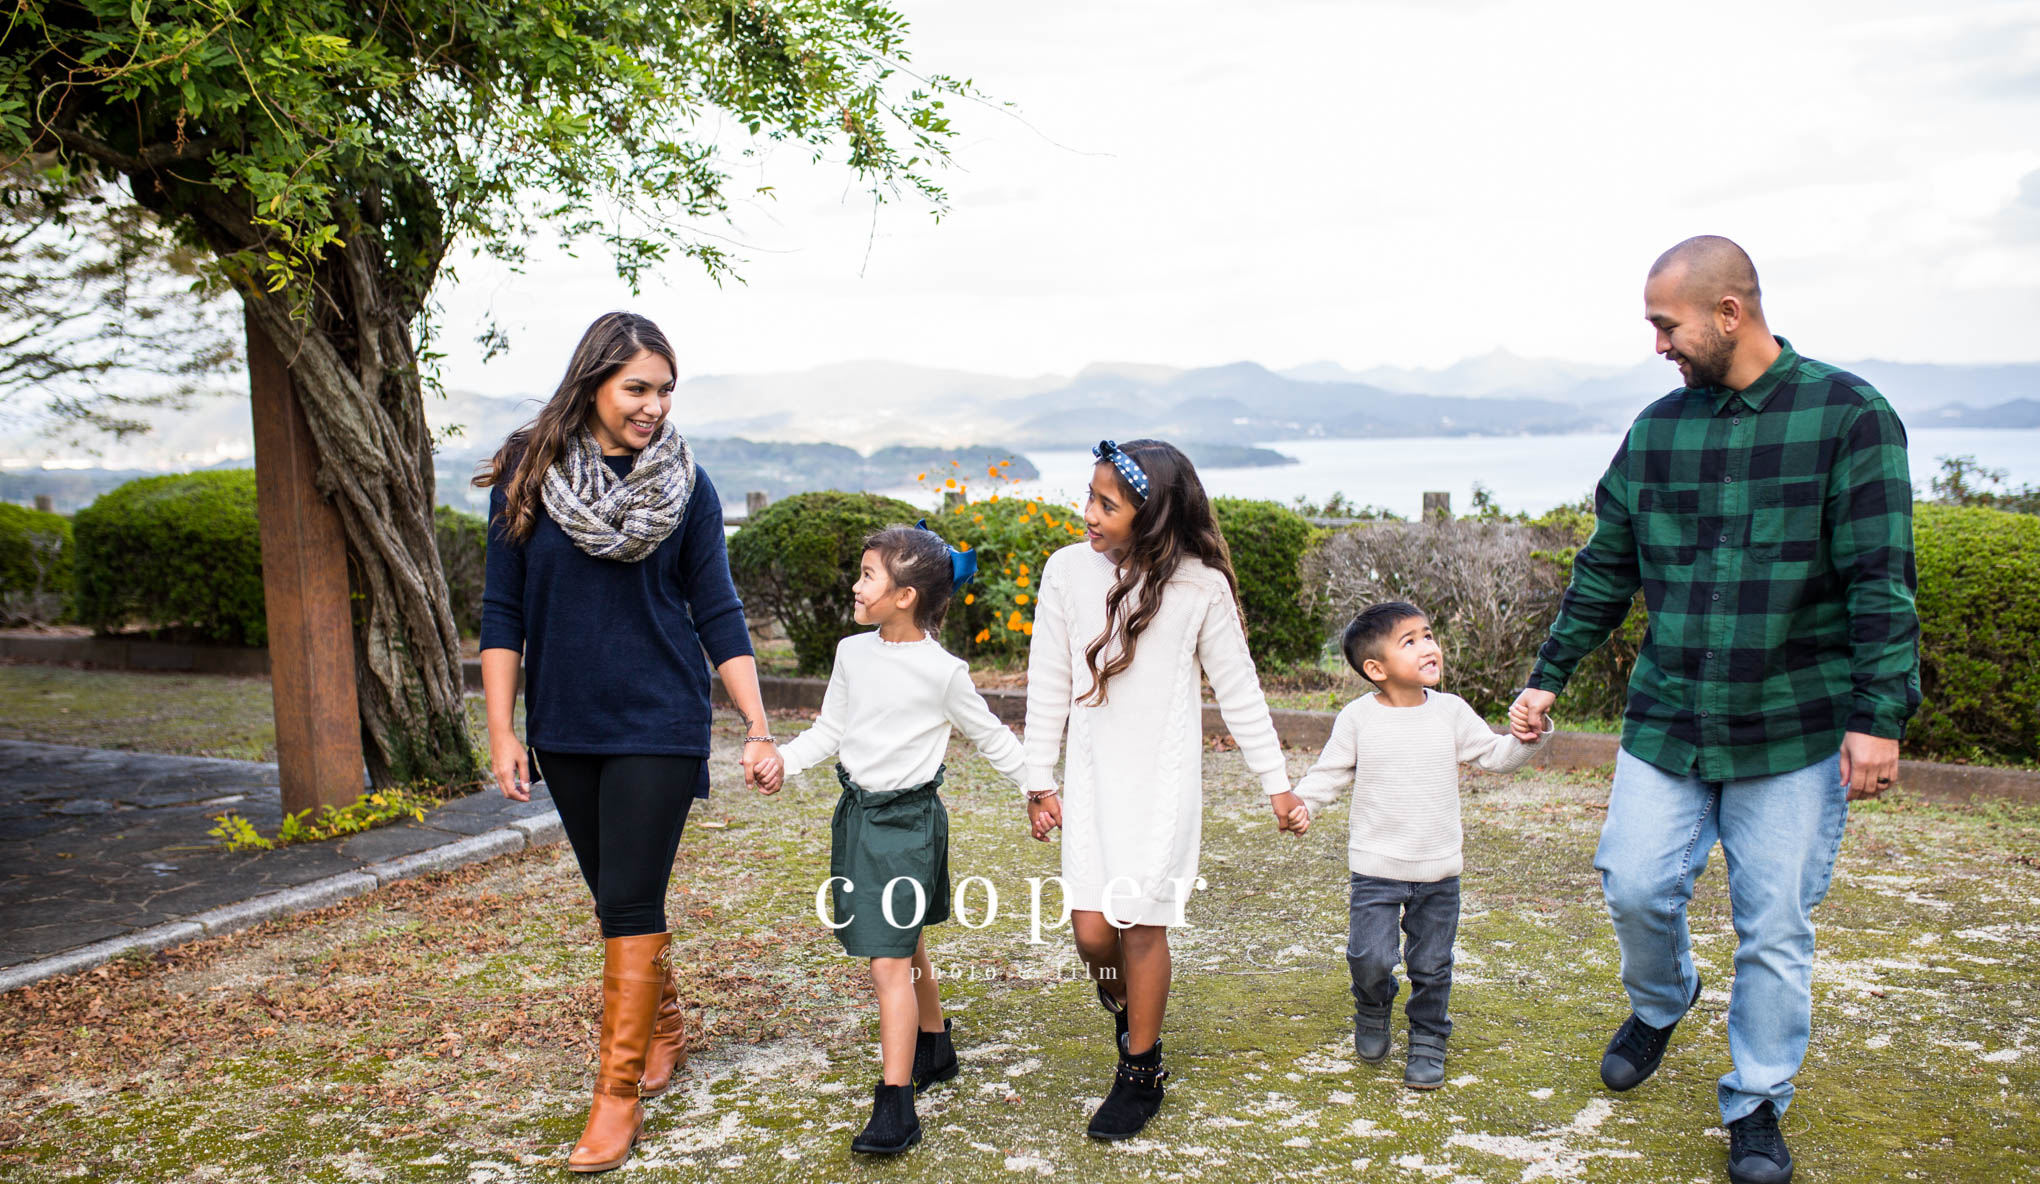 basic session - $199This section includes engagements, outdoor family, seniors, maternity, and head shots. We will work together on choosing a location that fits your vision. This session includes one outfit change.60 minute session30+ fully edited imagesfacebook sneak peek